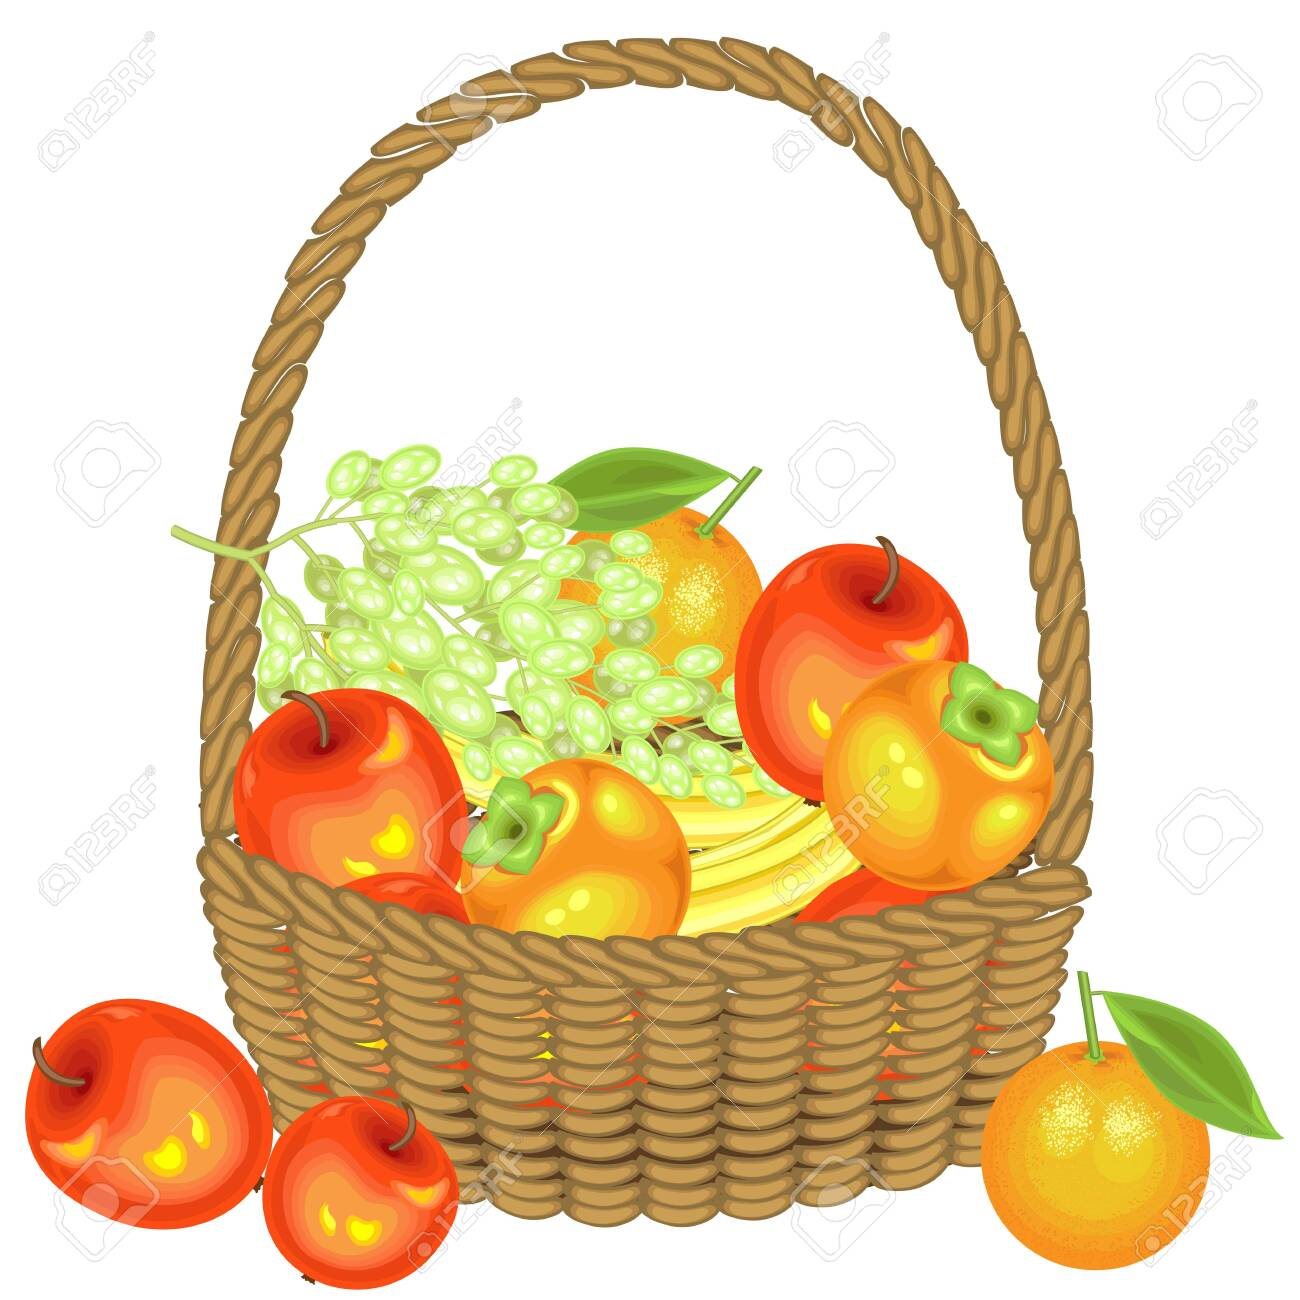 Collected a generous harvest. In the basket are apples, bananas, grapes, persimmons and oranges. Fresh beautiful fruit. Vector illustration. - 122018407